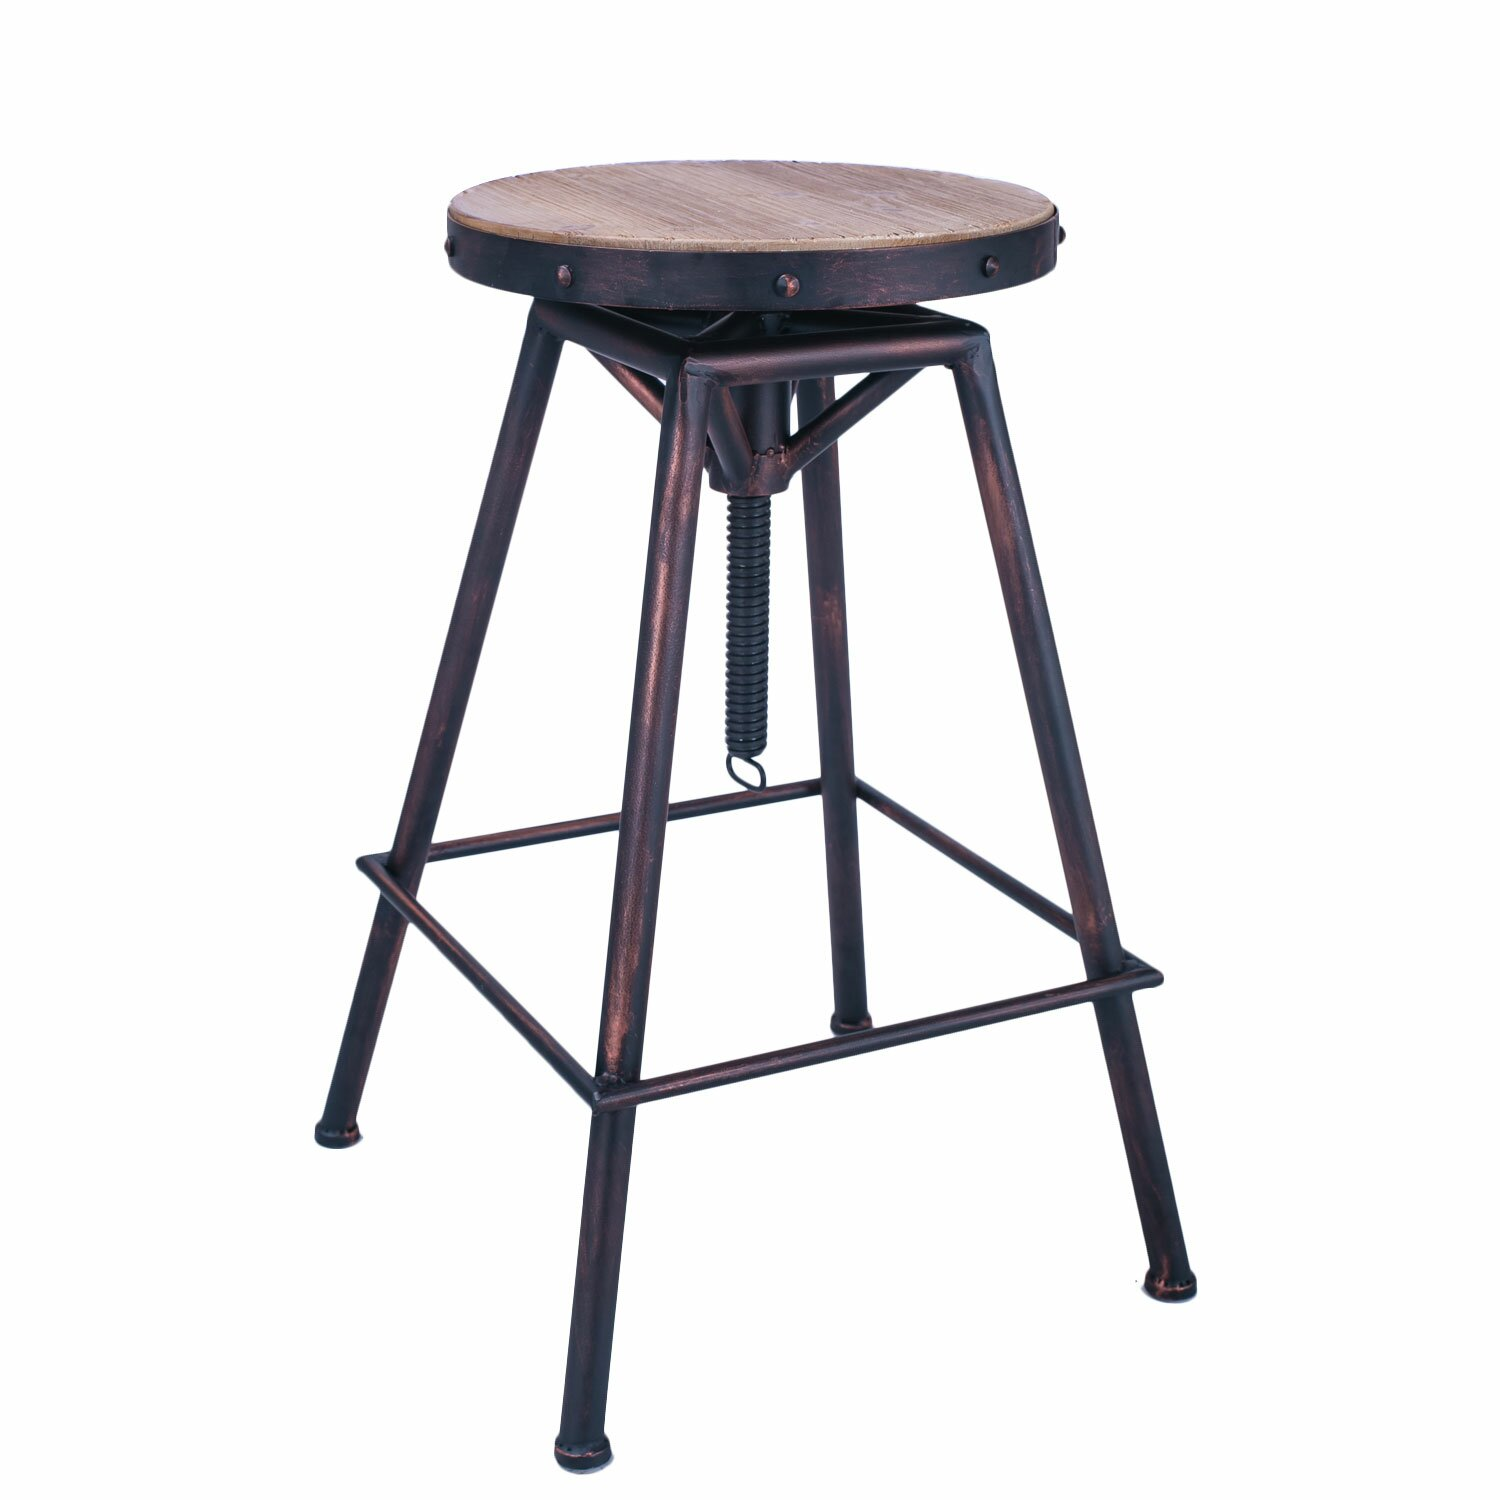 Adecotrading Adjustable Height Swivel Bar Stool Amp Reviews